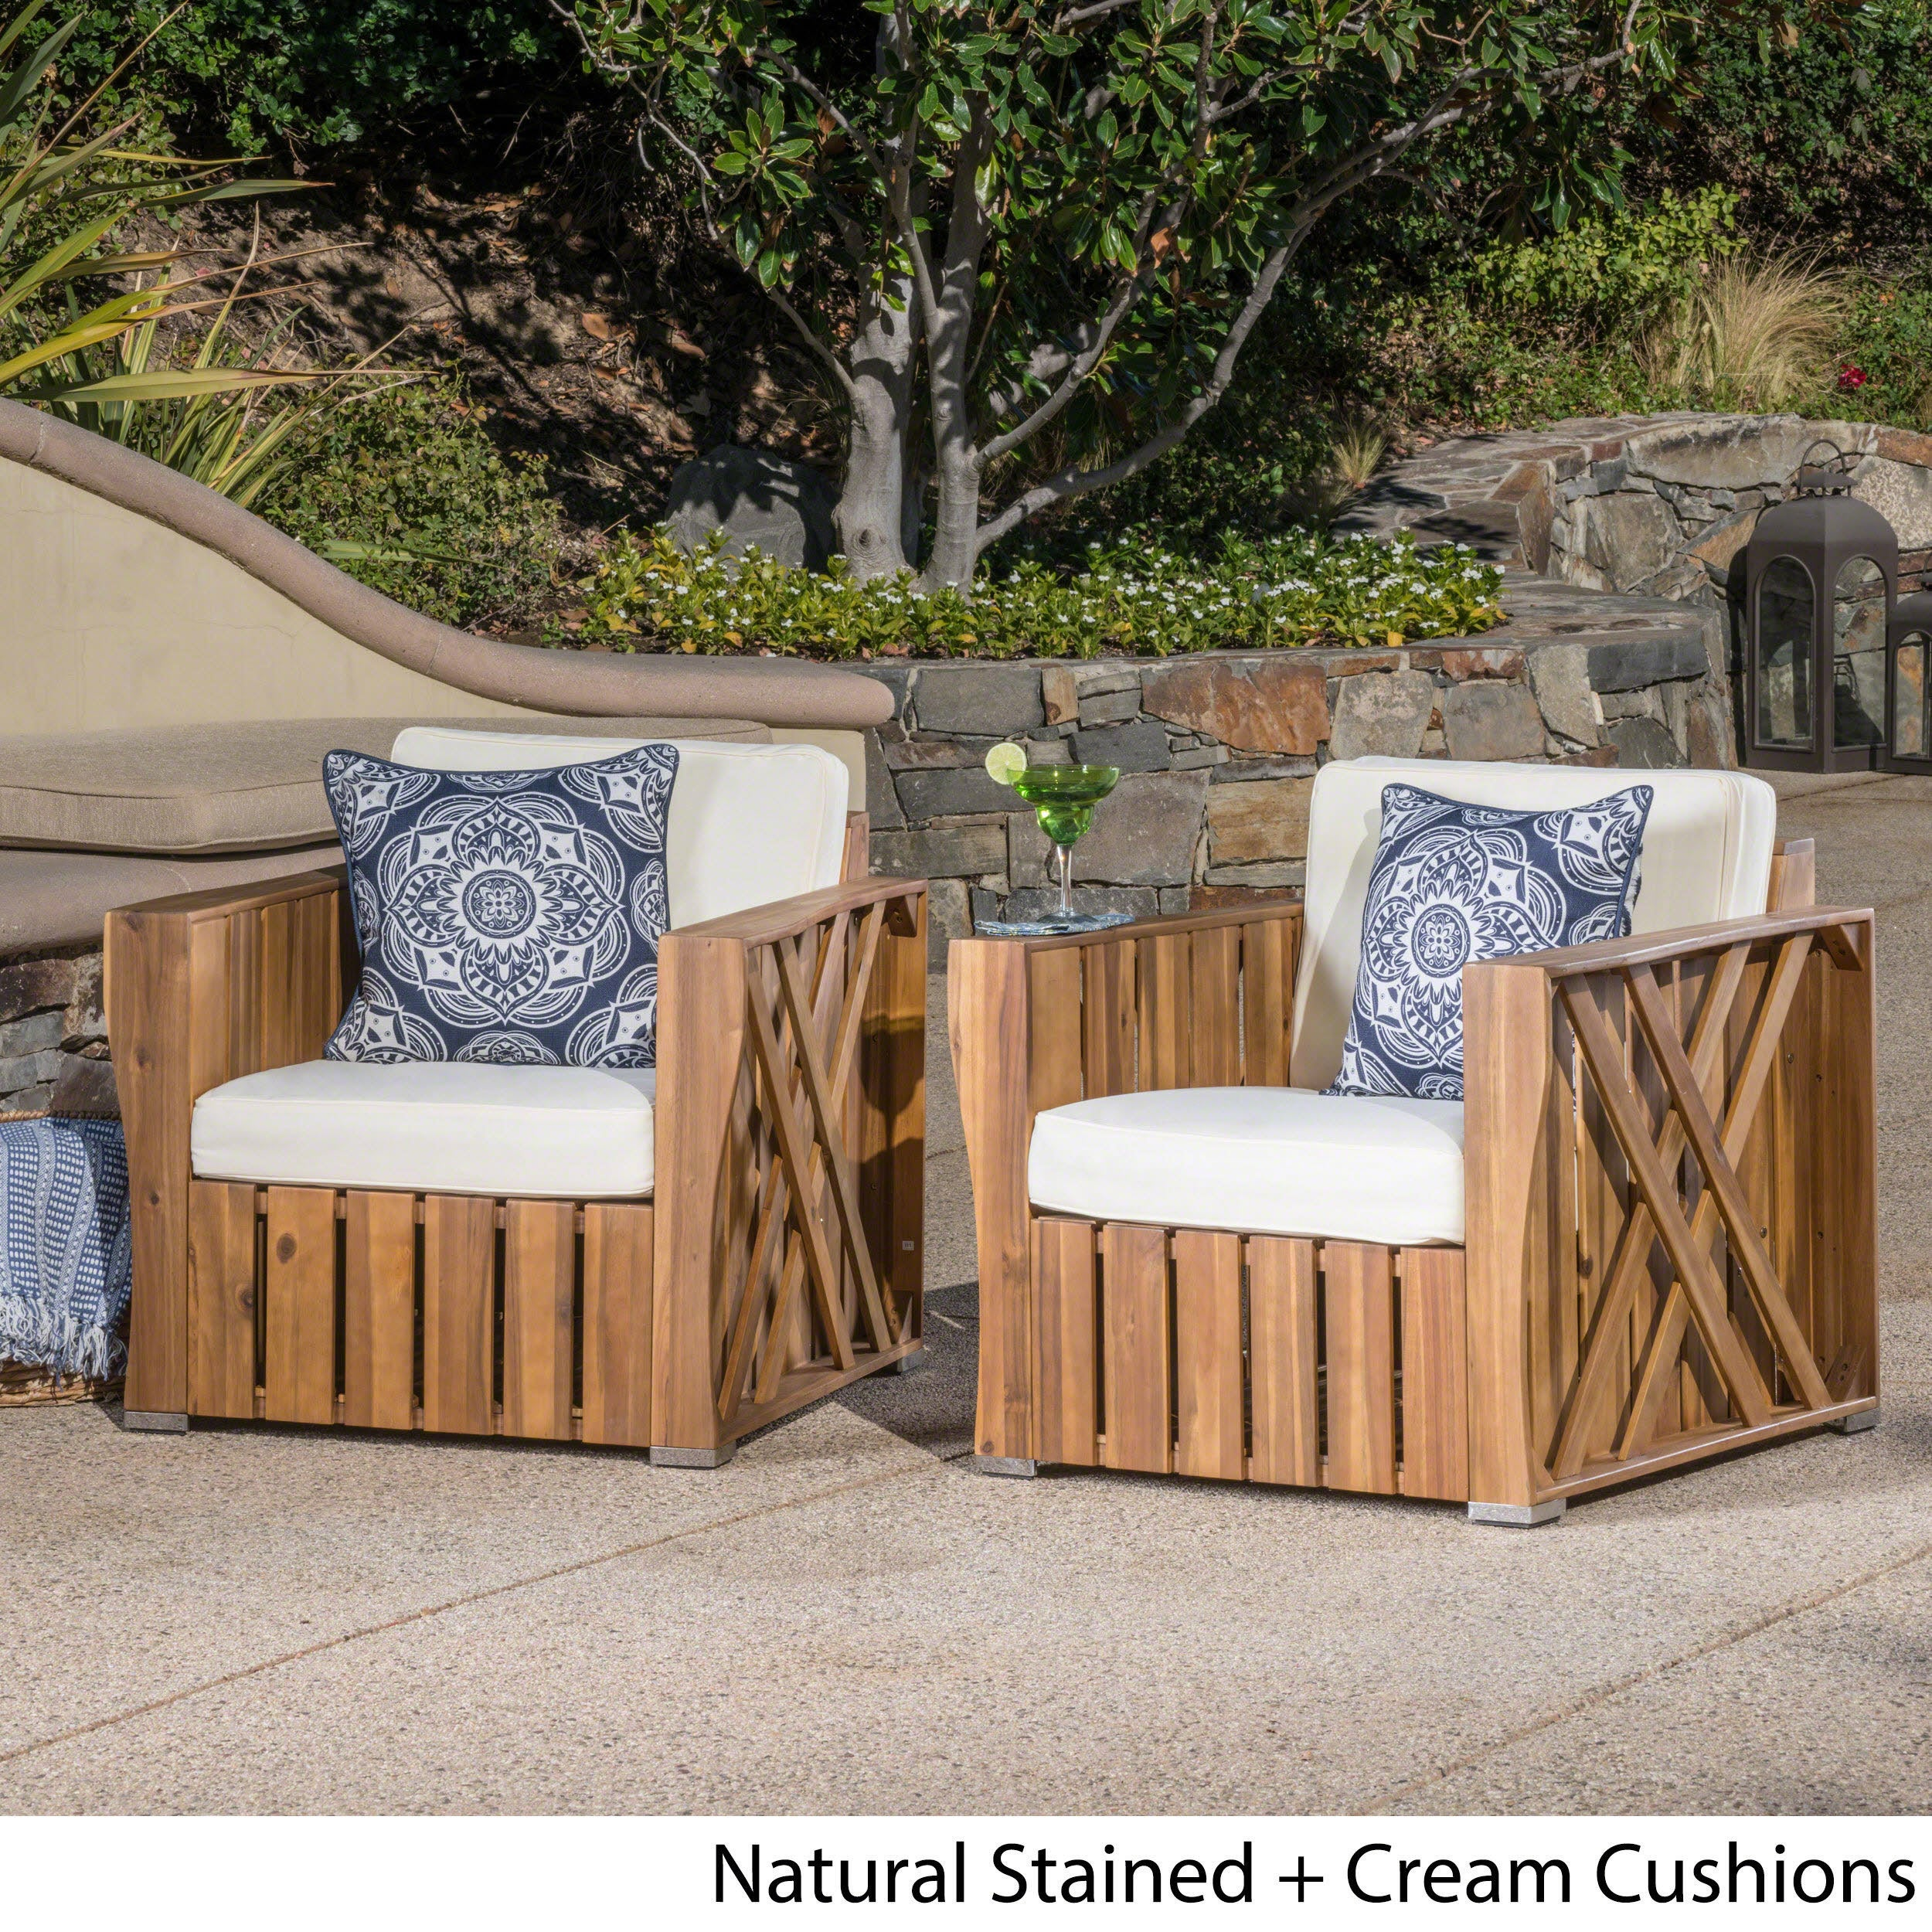 Prime Cadence Outdoor Acacia Wood Club Chair With Cushion Set Of 2 By Christopher Knight Home Lamtechconsult Wood Chair Design Ideas Lamtechconsultcom